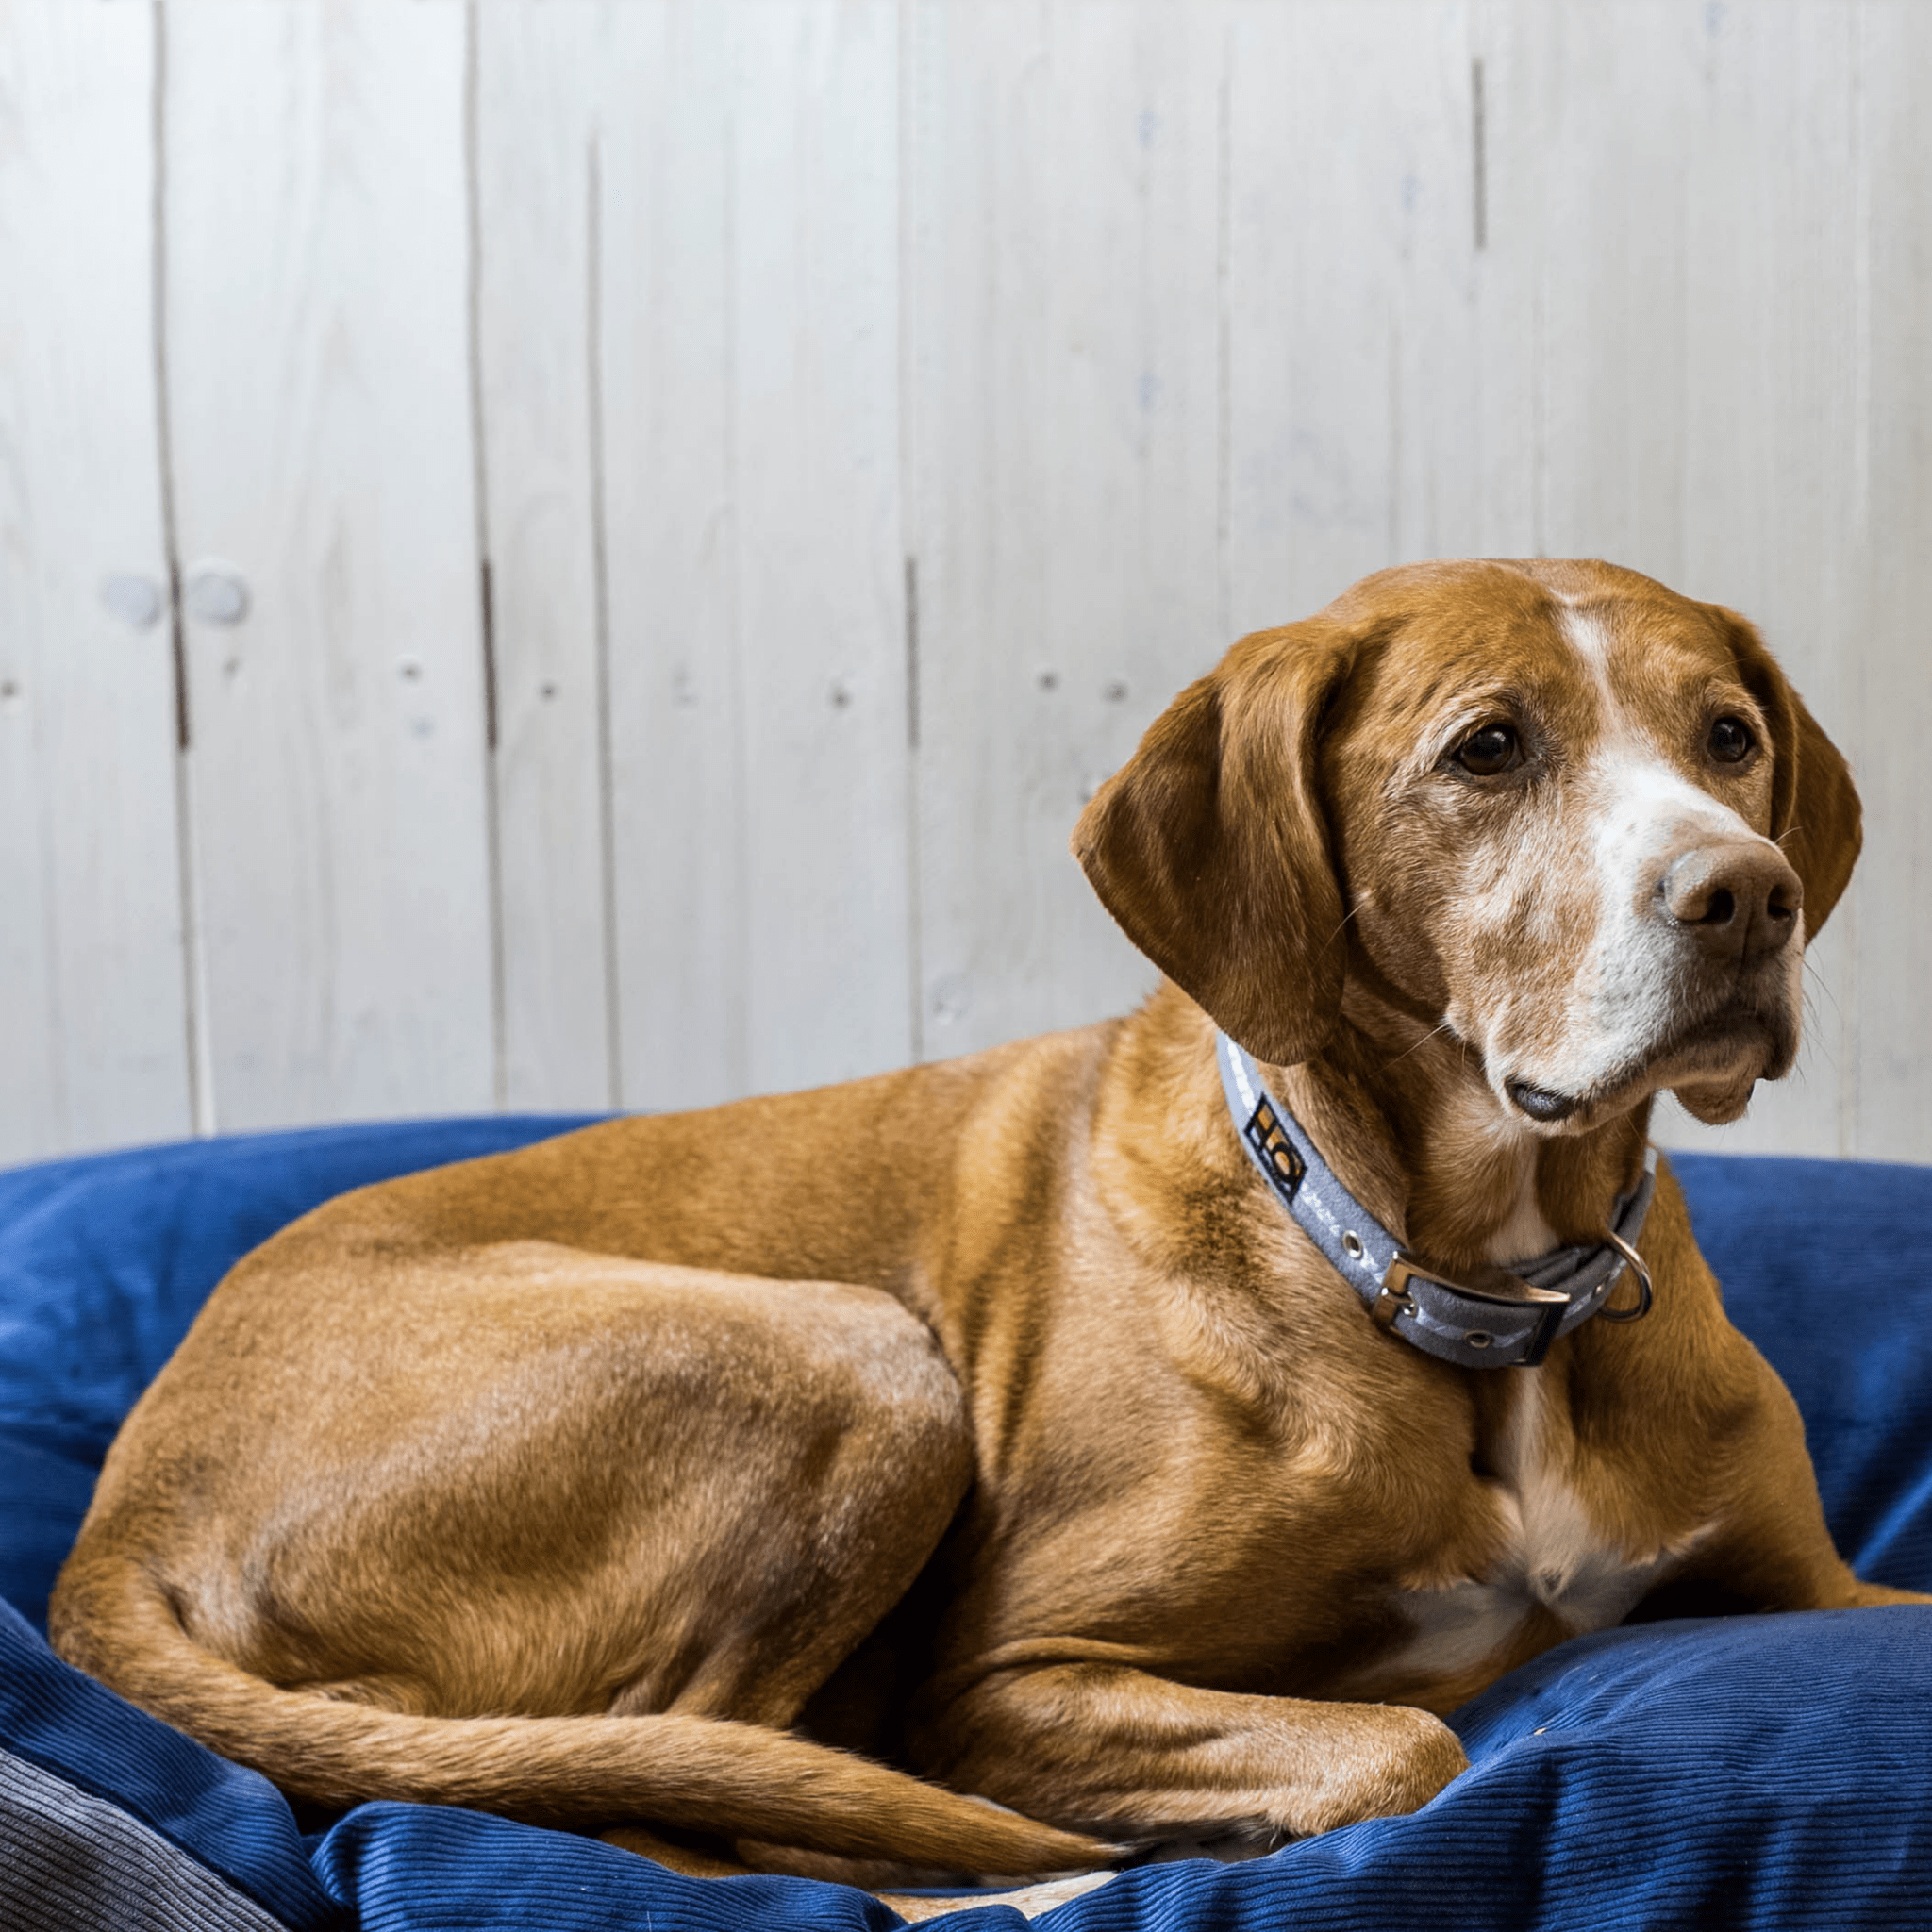 A dog in an Oscar and Hooch collar, sitting on a blue dog bed